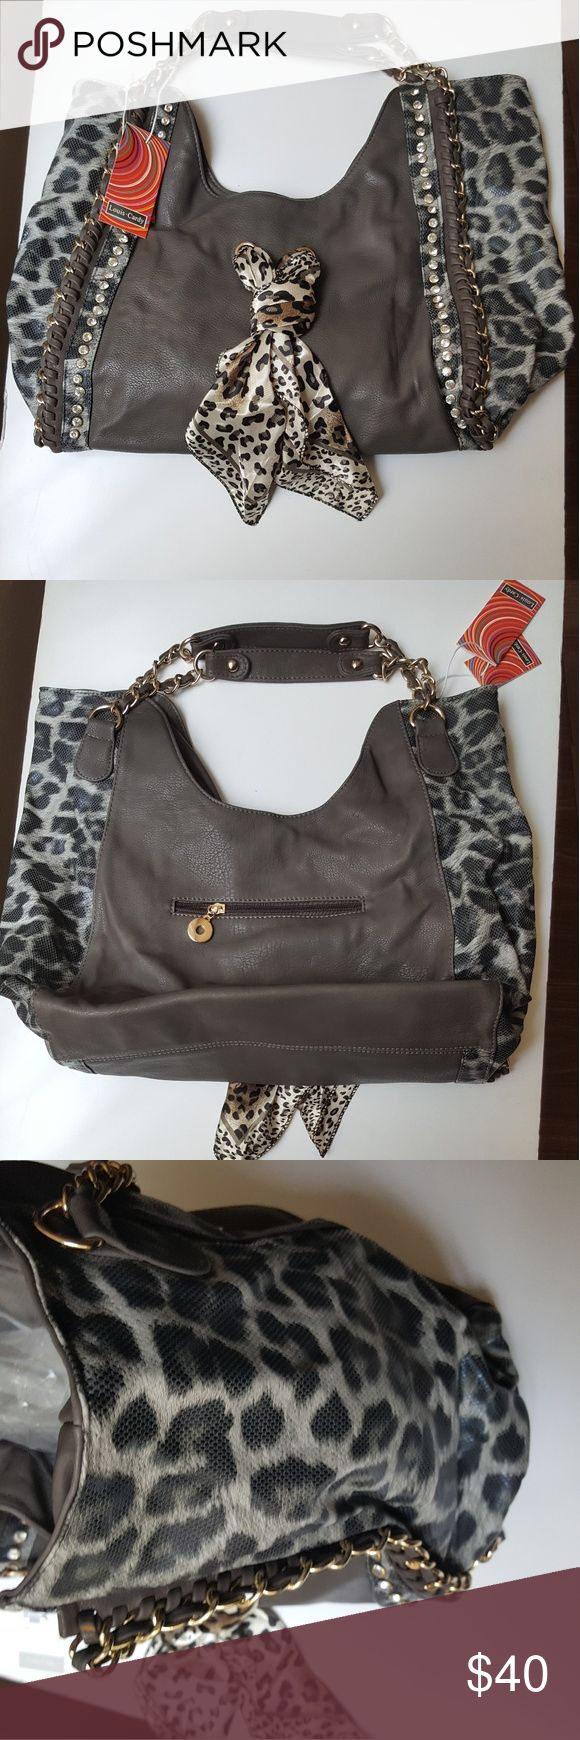 Grey  shoulder bag with animal print and scarf Stylish grey oversized shoulder bag (New with tags) - animal print side-by-side design with scarf attached; nice compartments, zipper closure. Measurements: Width- 19 inches,  Length - 10 inches, Shoulder straps - 15 inch (chain link).. Bags Shoulder Bags